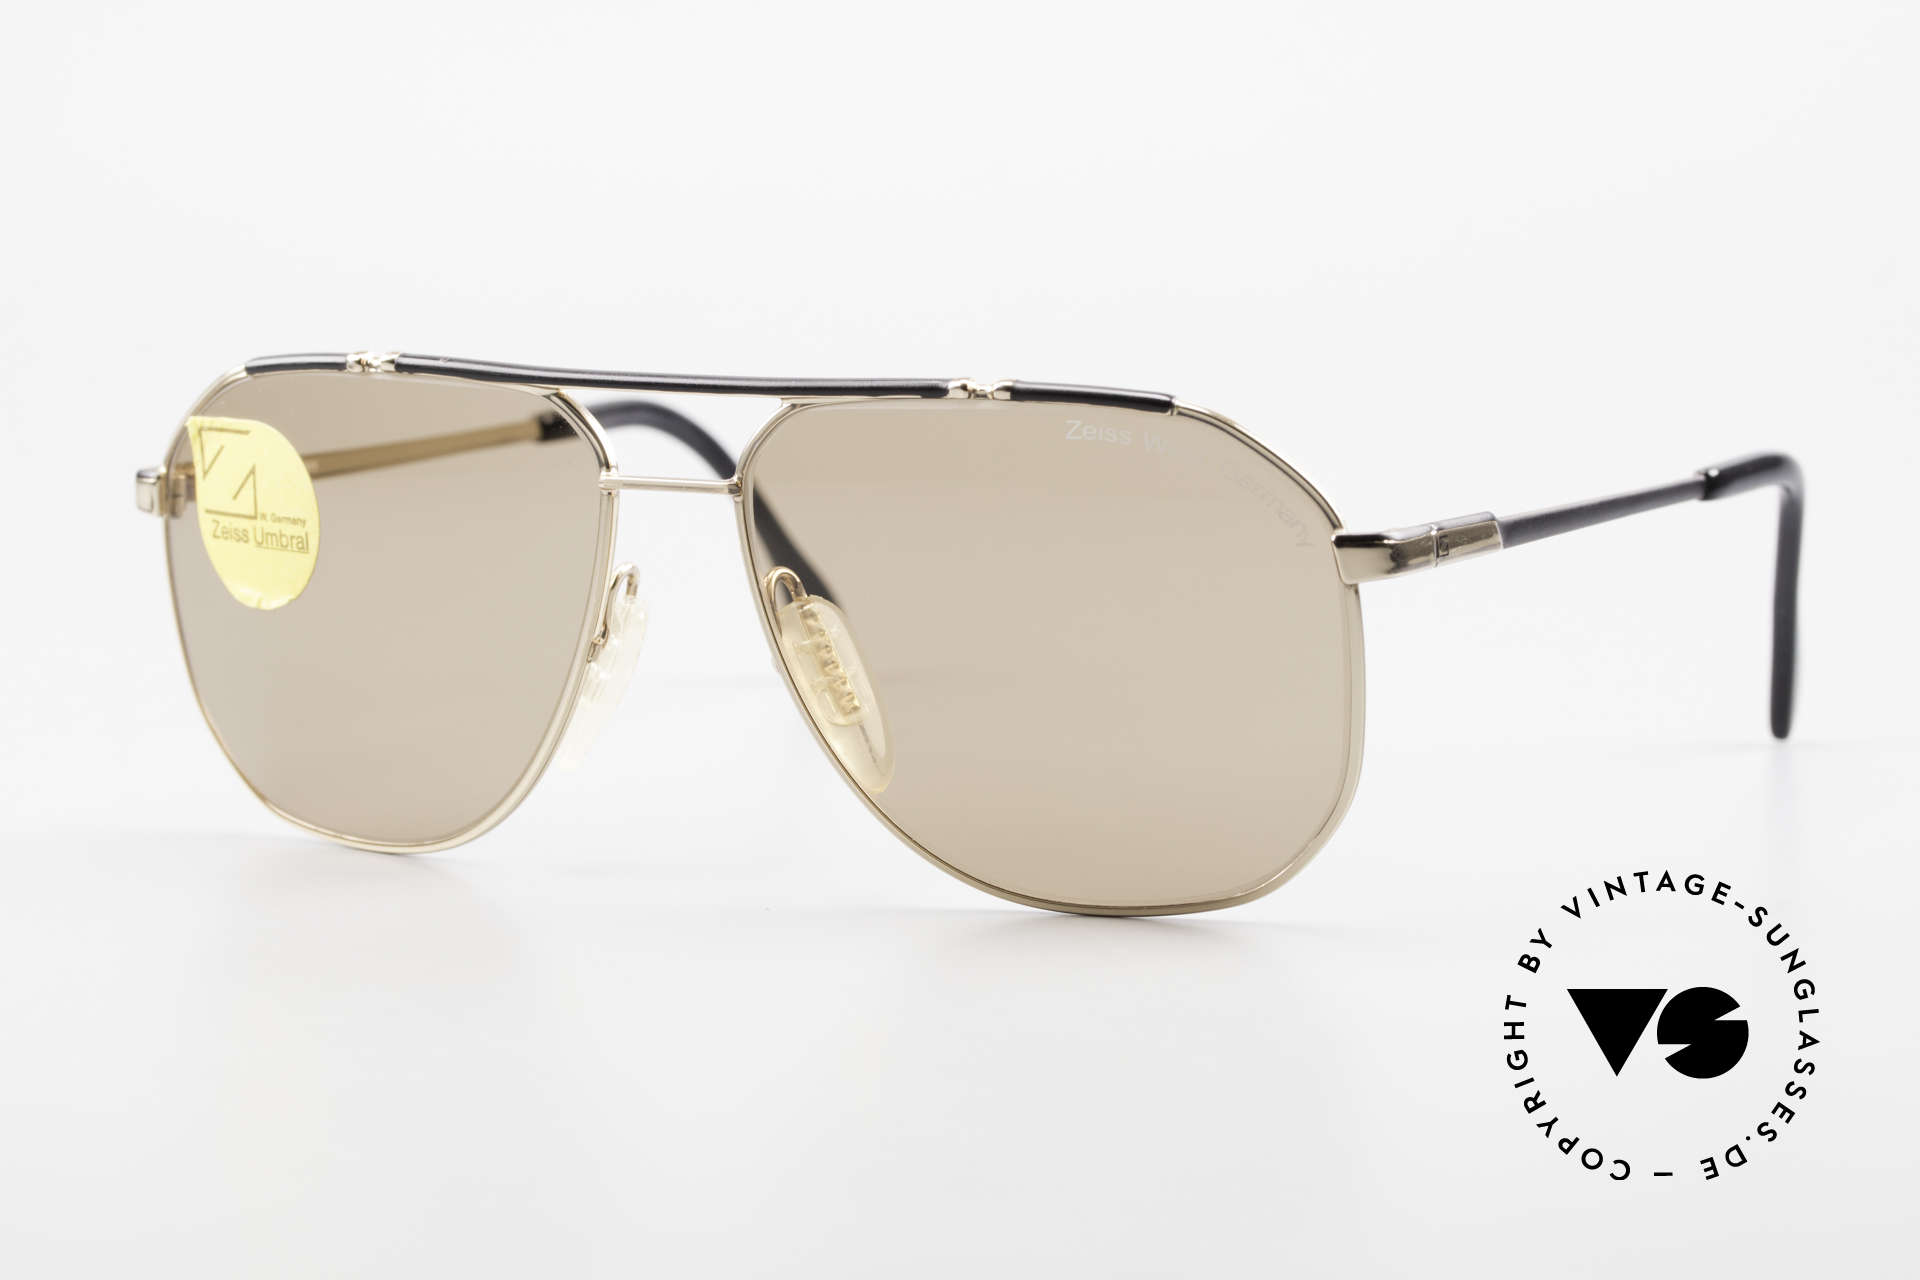 Zeiss 9288 80's Umbral Quality Sun Lenses, old ZEISS West Germany 1980's vintage sunglasses, Made for Men